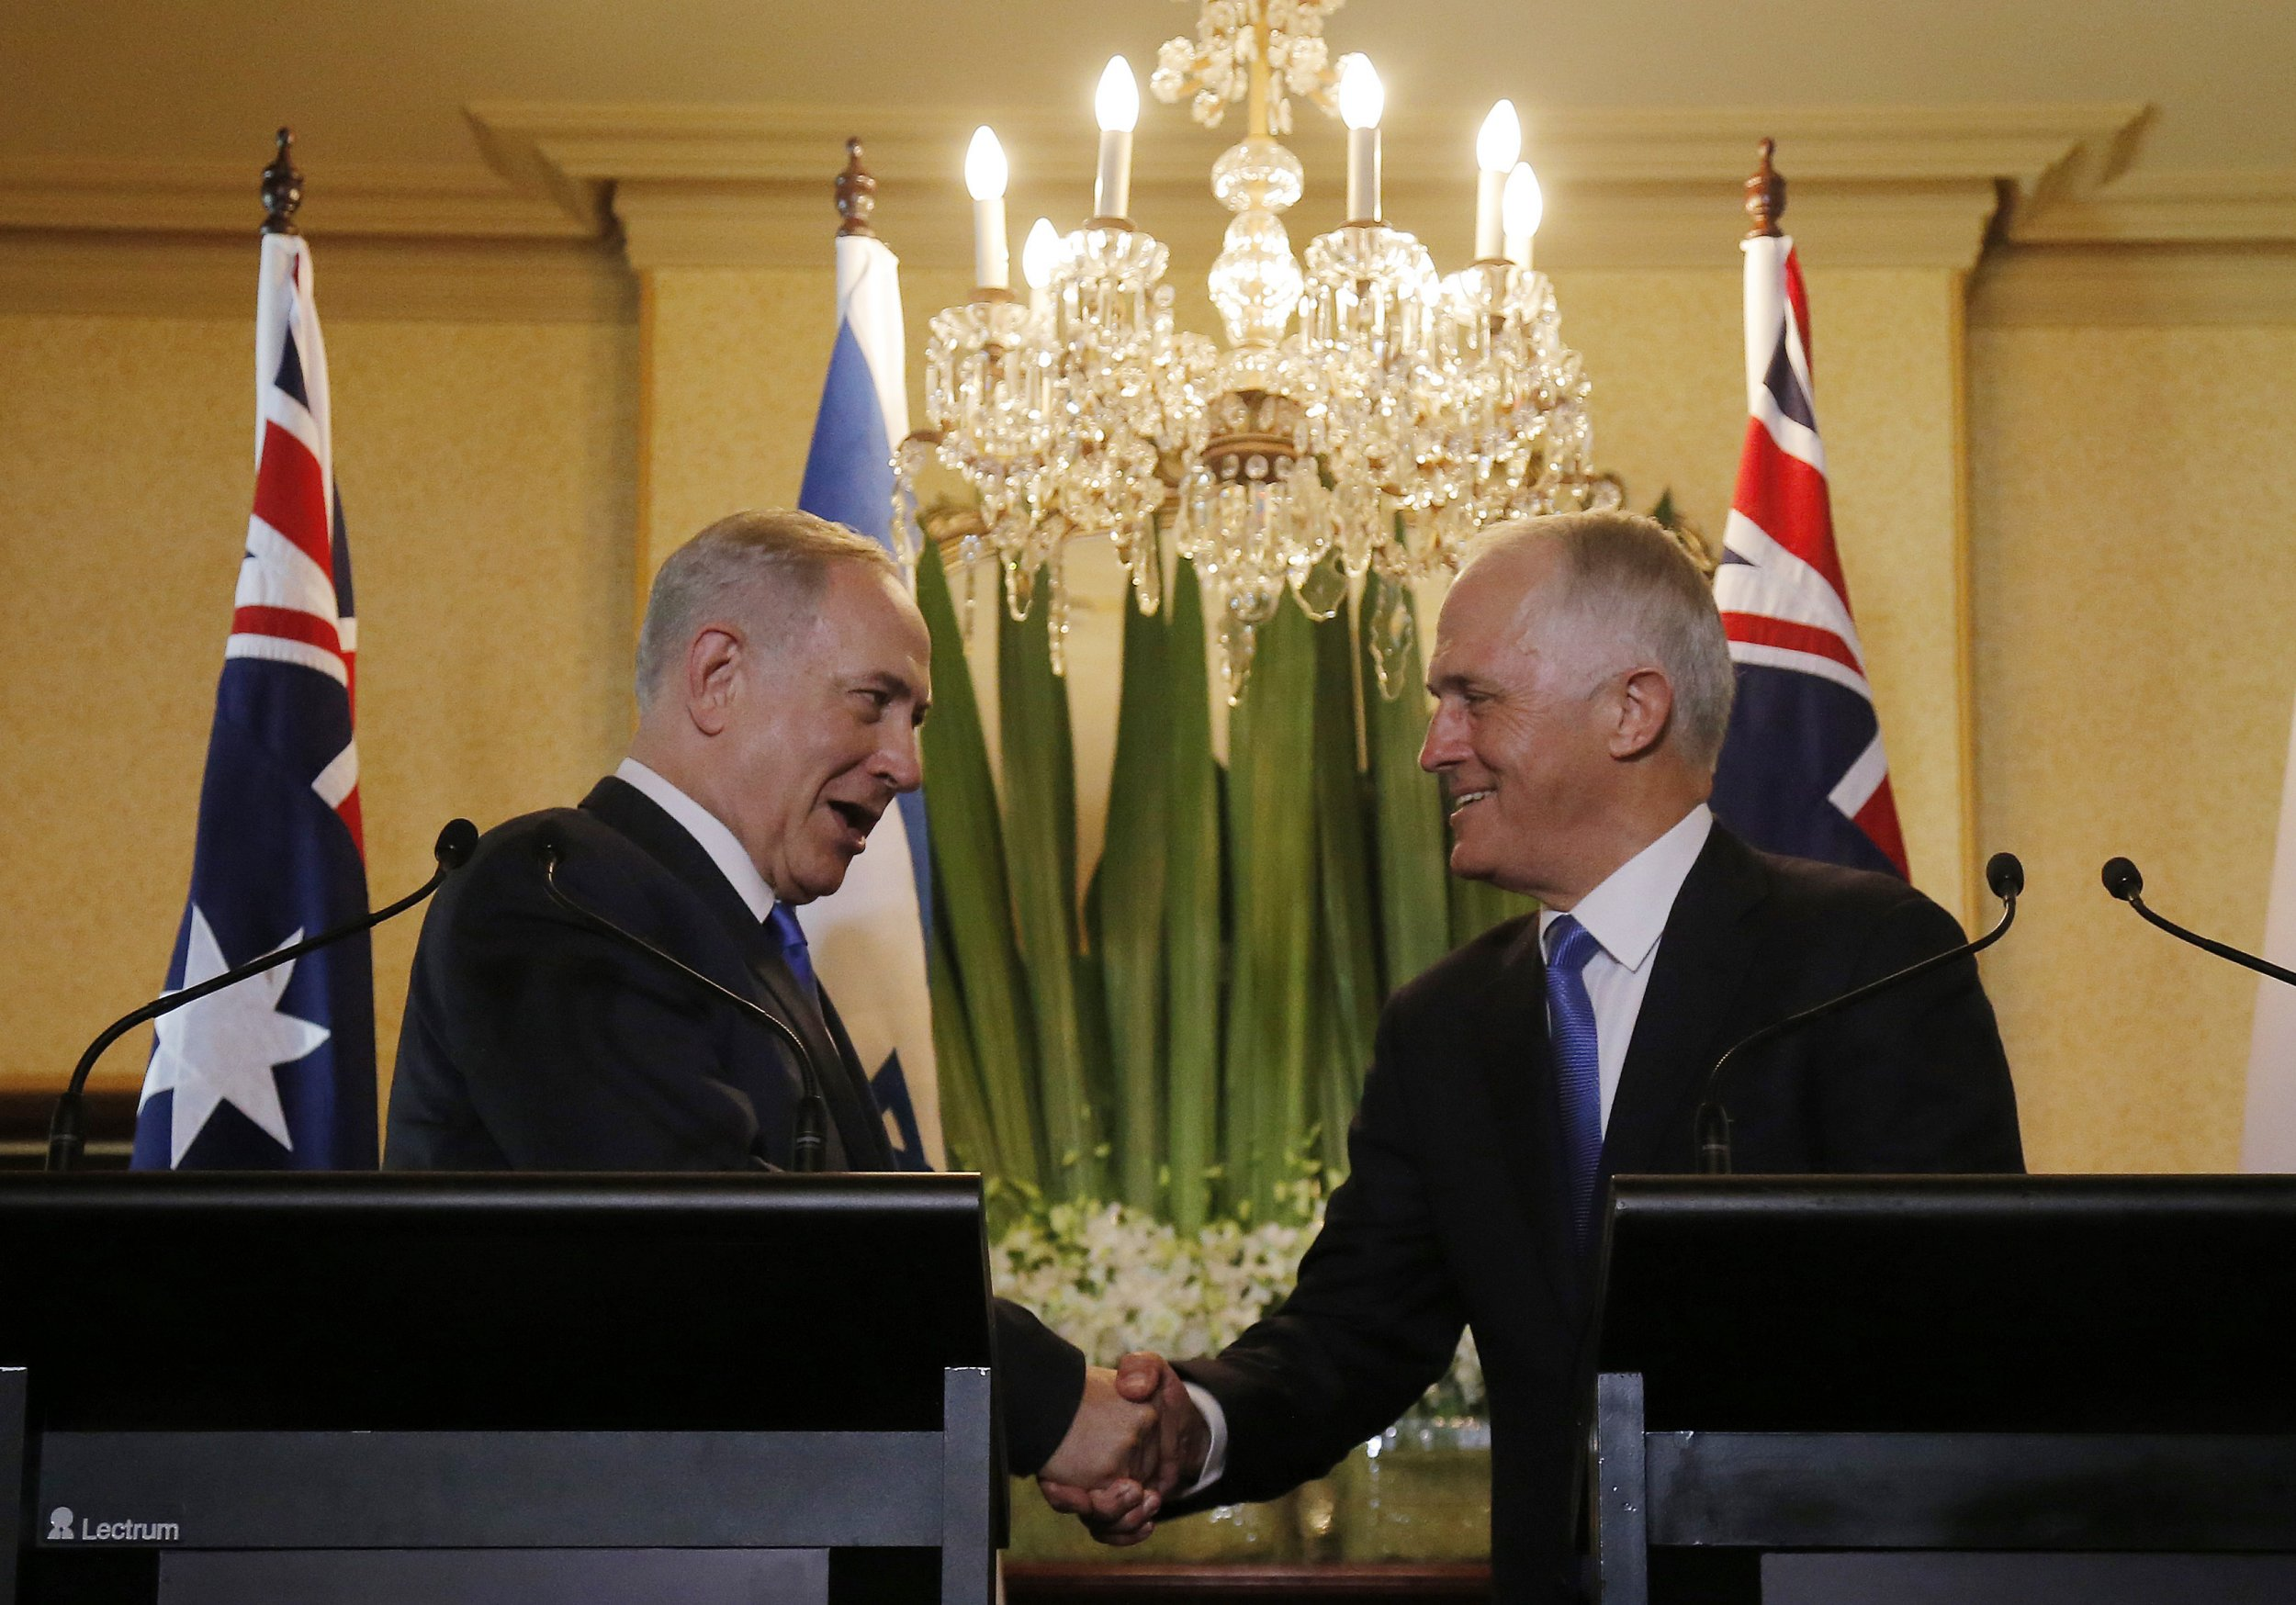 Netanyahu and Turnbull